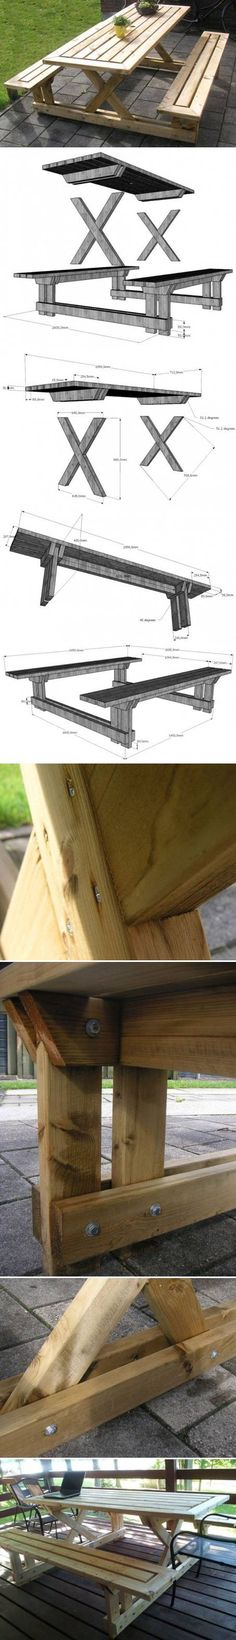 DIY Garden Bench and Table garden table diy crafts easy crafts diy ideas diy crafts do it yourself easy diy diy tips diy furniture home crafts craft f. Furniture Projects, Garden Furniture, Home Projects, Diy Furniture, Furniture Plans, System Furniture, Outdoor Furniture, Woodworking Plans, Woodworking Projects